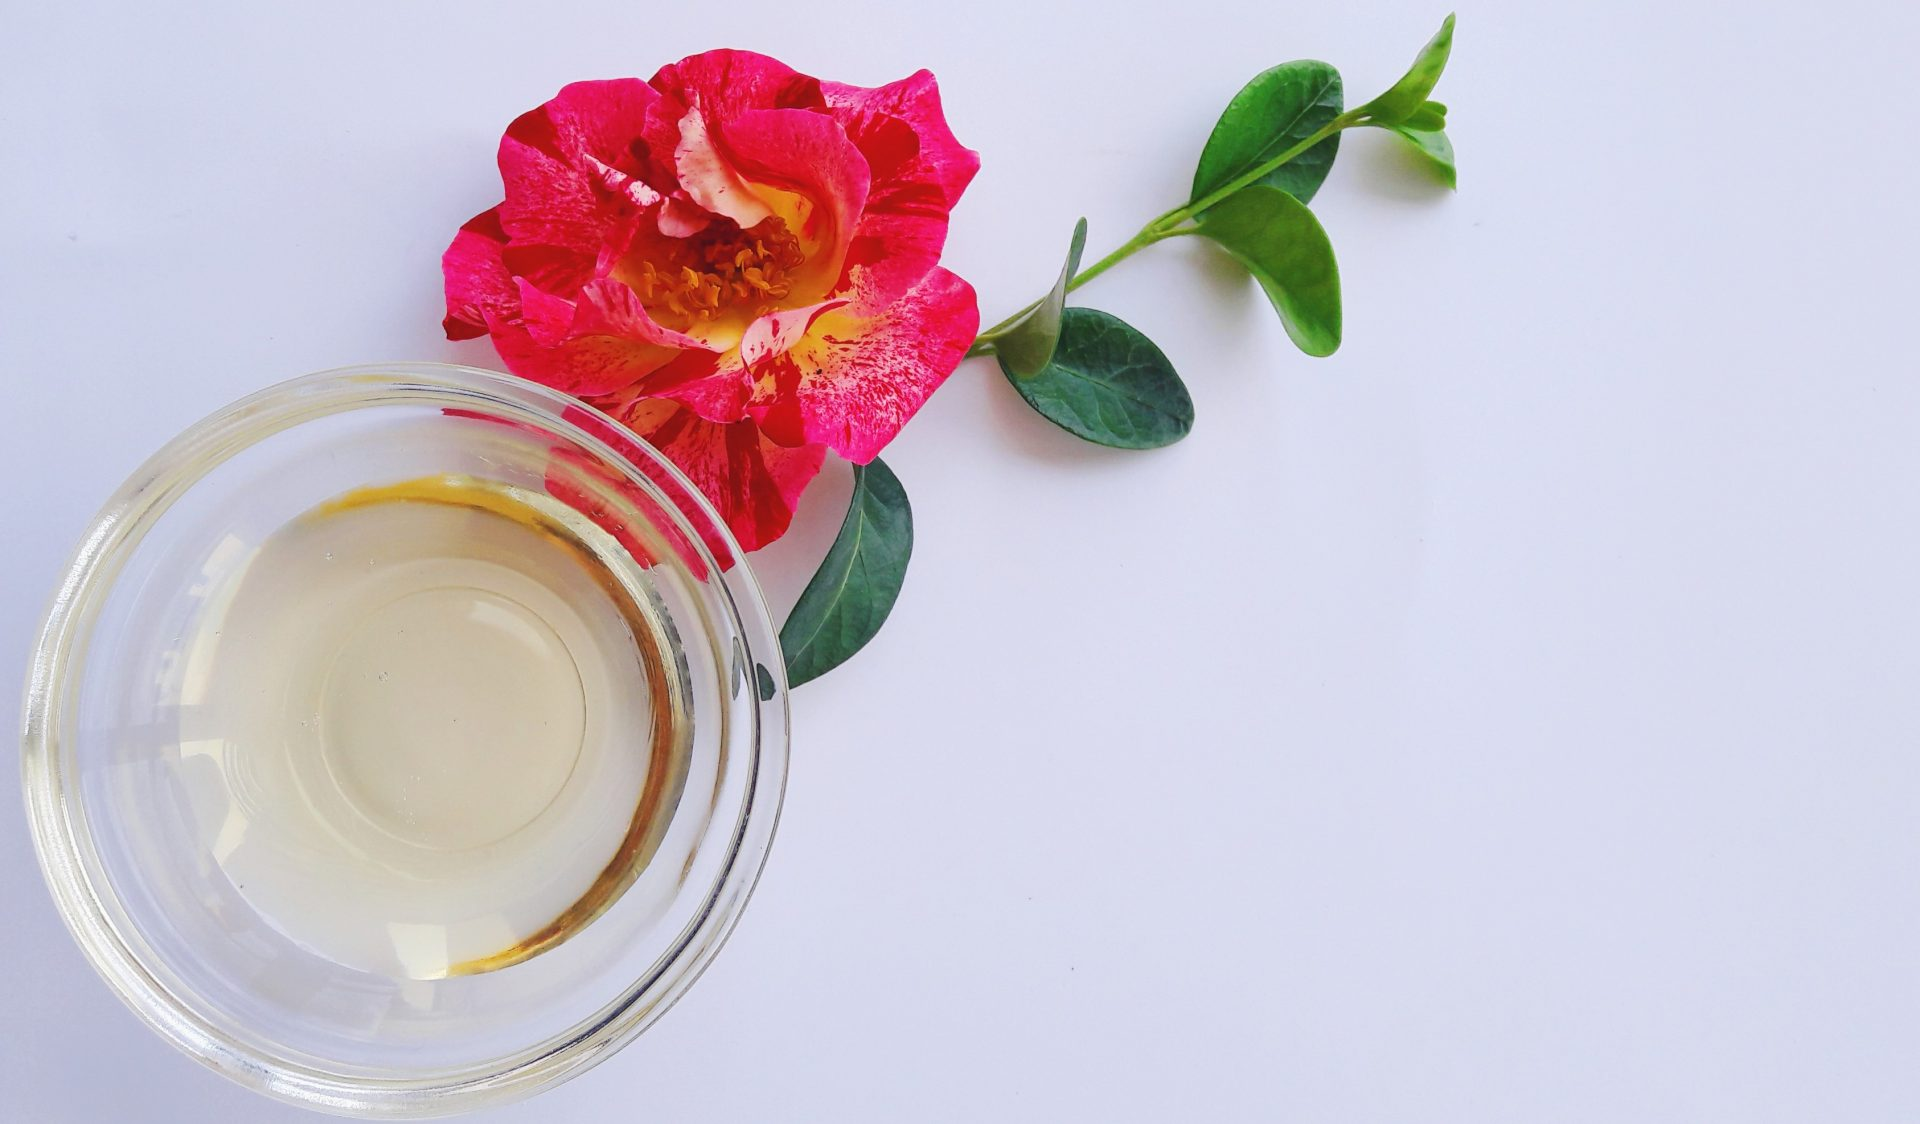 Luscious Camellia Oil Skin Benefits And How to Use It?